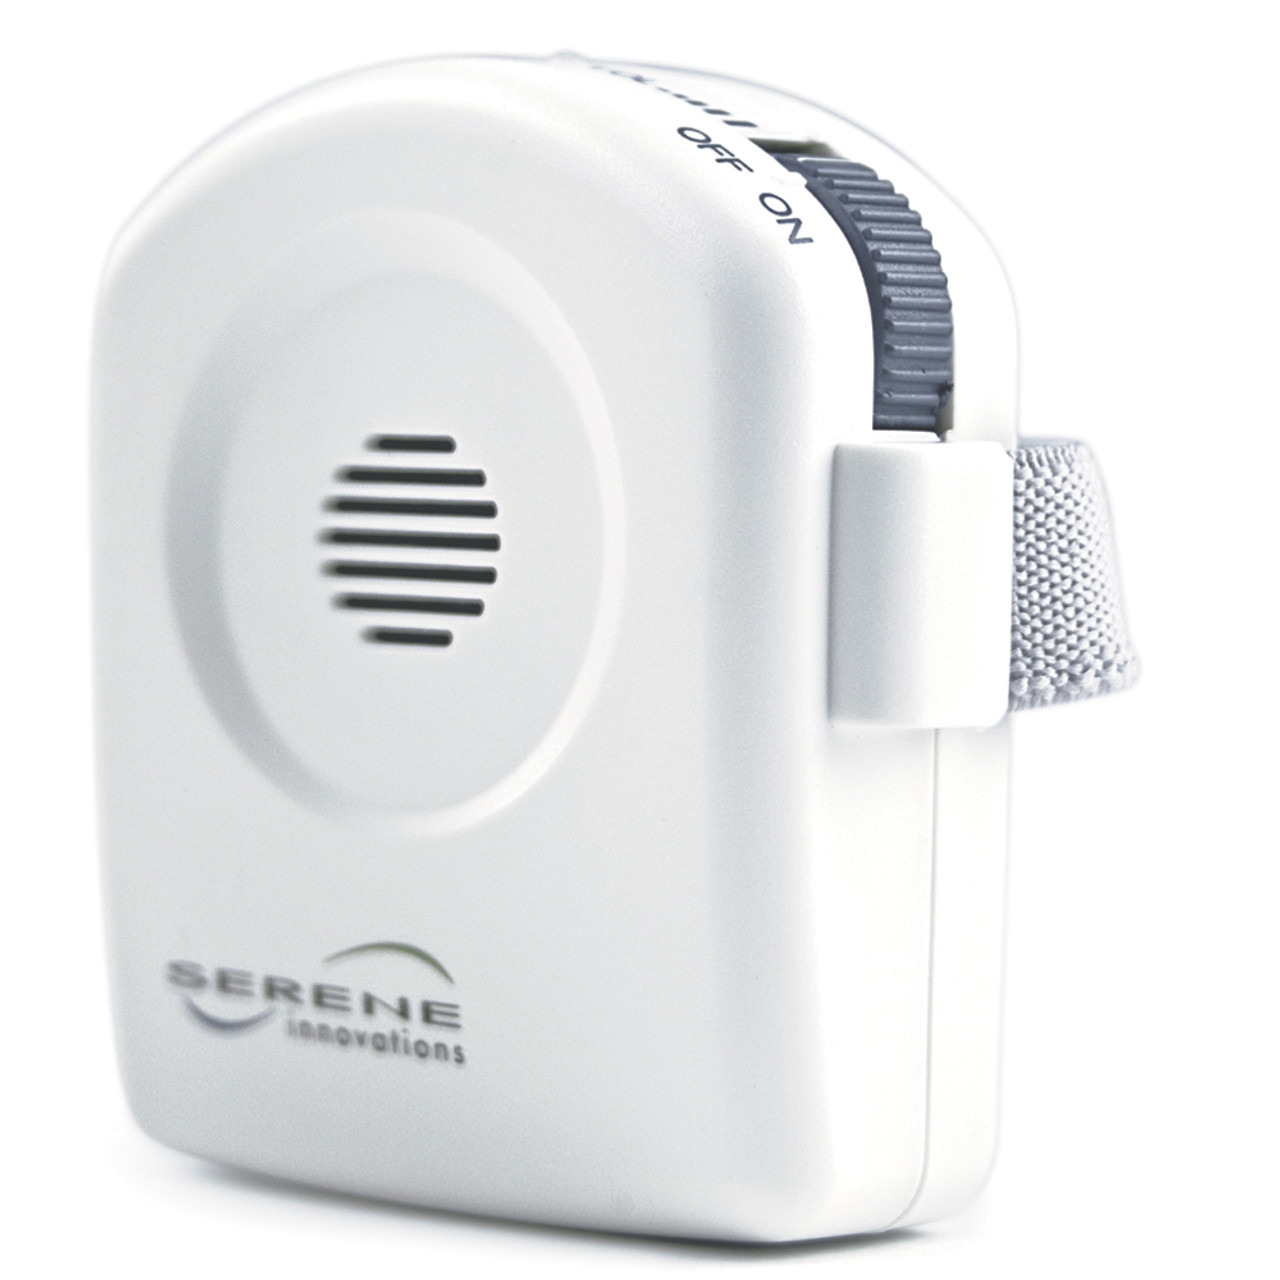 Serene Portable Strap-On Amplifier 26dB UA-30